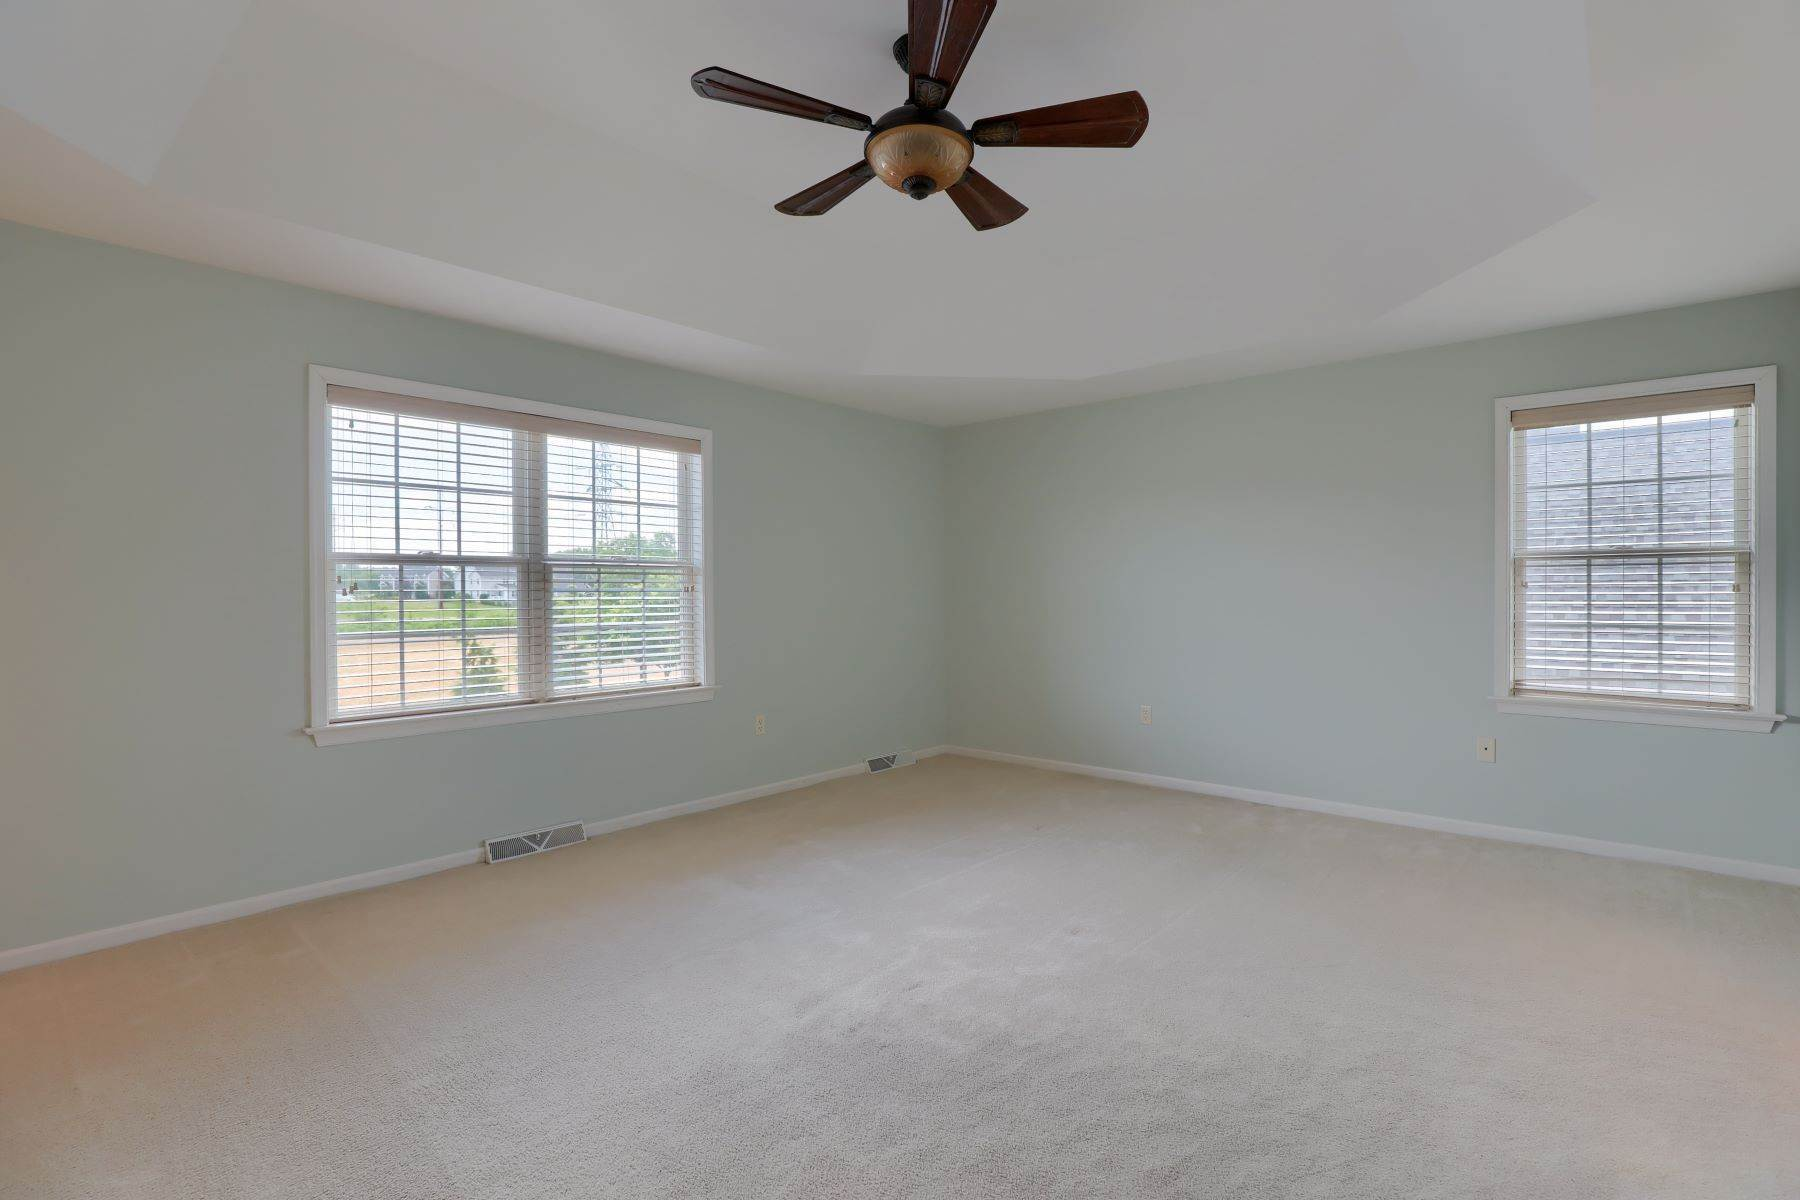 22. Single Family Homes for Sale at 18 Jared Place Lititz, Pennsylvania 17543 United States